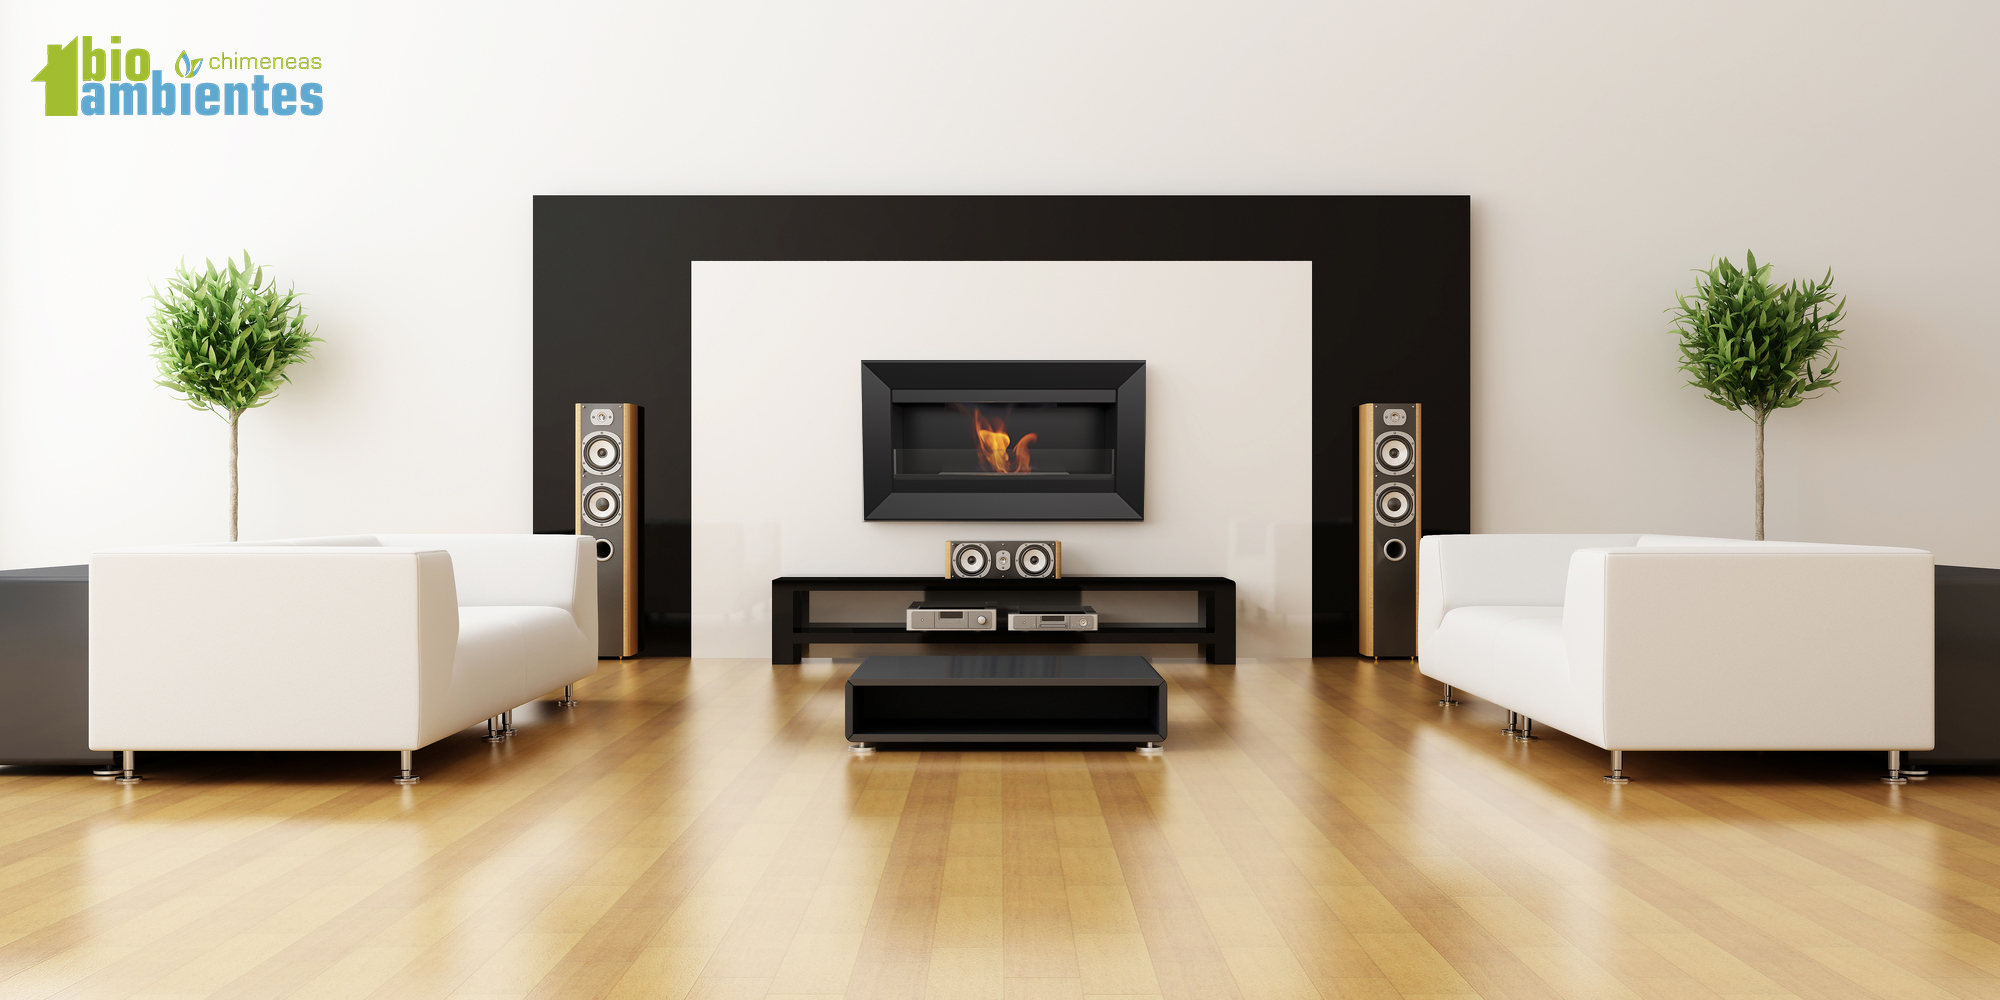 Modern interior painting ideas - Top 20 Black And White Living Room Design Ideas Home